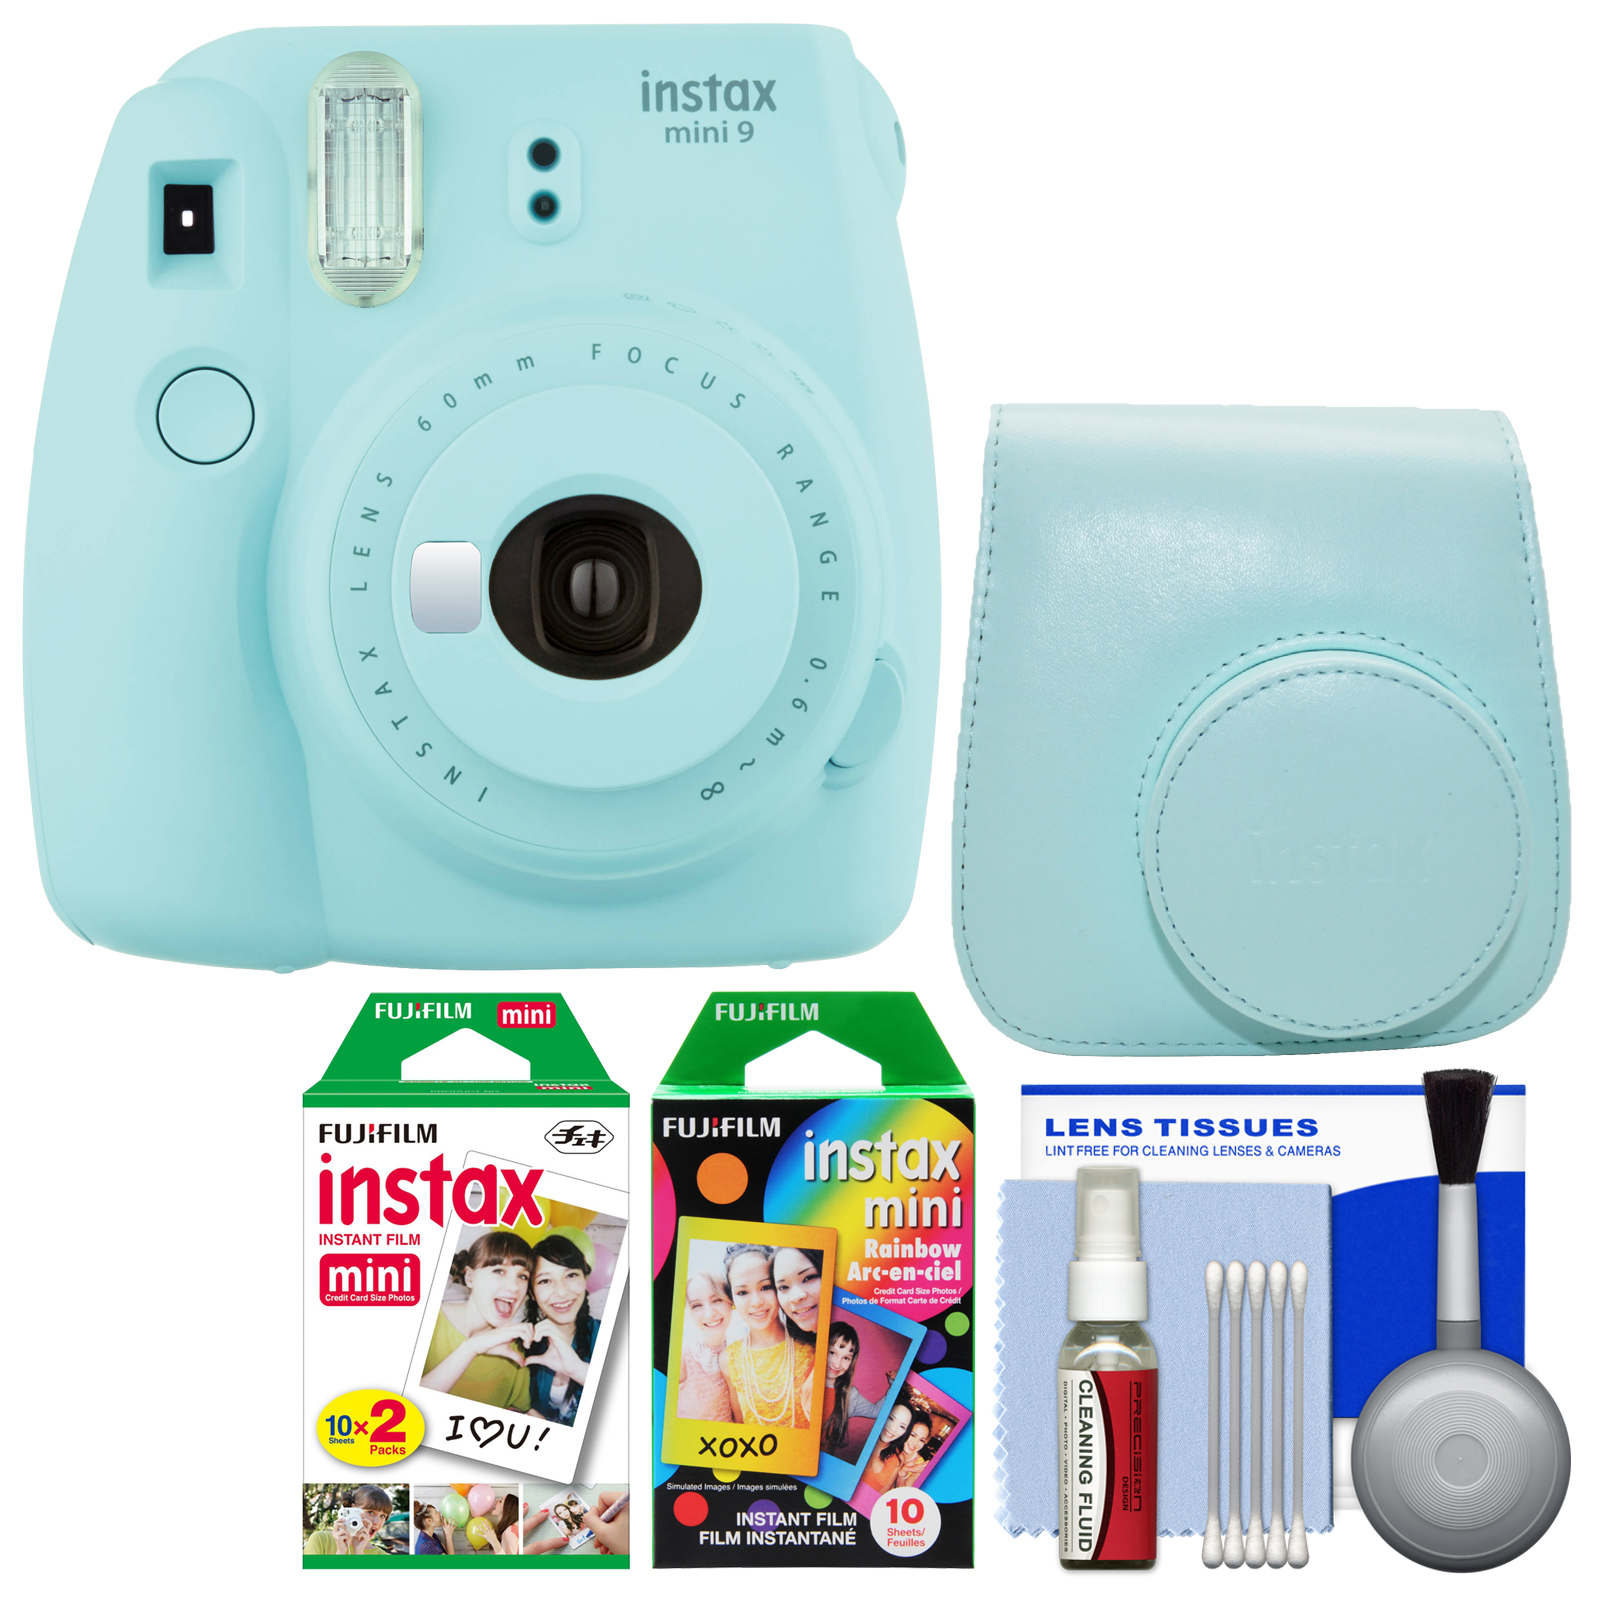 Fujifilm Instax Mini 9 Instant Film Camera (Ice Blue) with Case + 20 Twin & 10 Rainbow Prints + Cleaning Kit